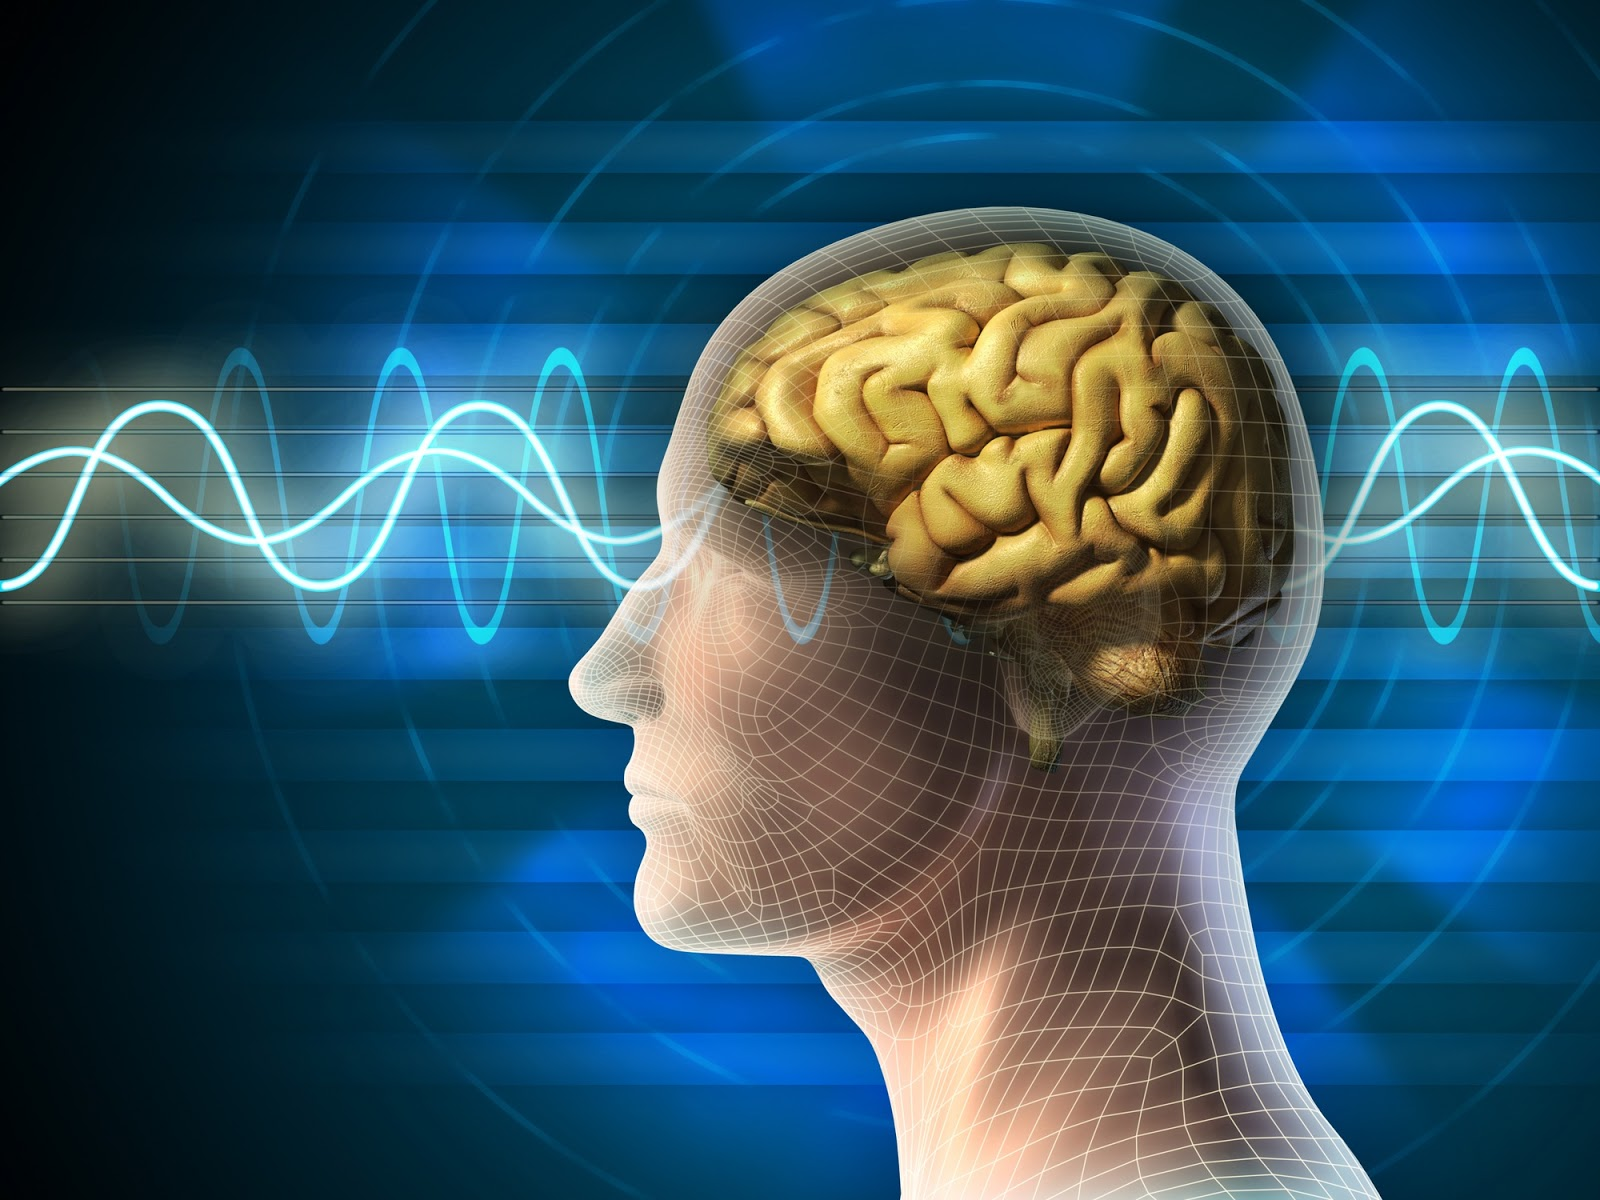 Stanford Study On Brain Waves Shows How >> Trendssoul By Ozlem Yan Devrim Stanford Study On Brain Waves